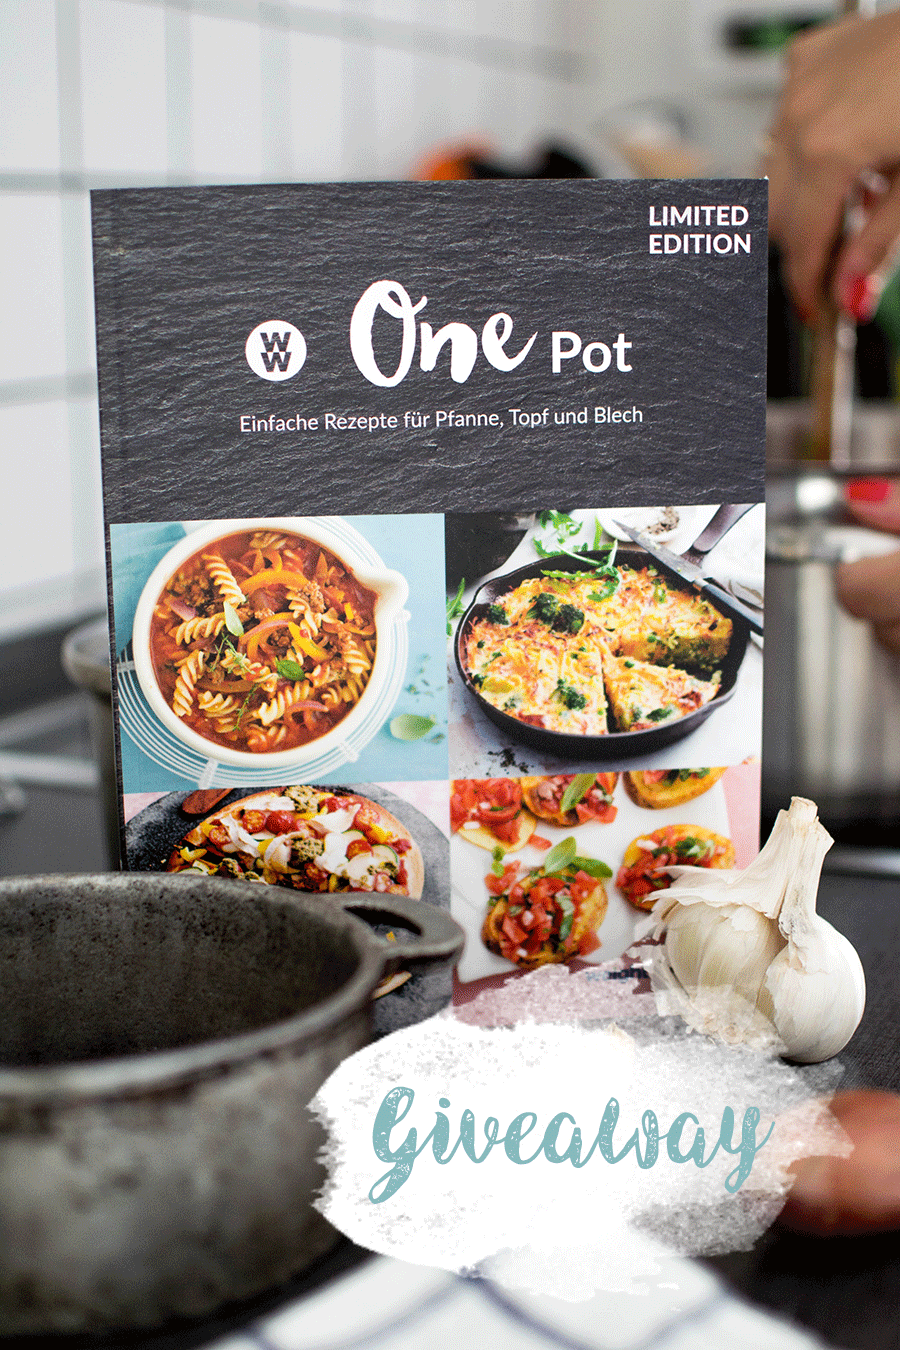 One Pot Rezept: Paprika - Tatar - Eintopf (WeightWatchers) + Giveaway